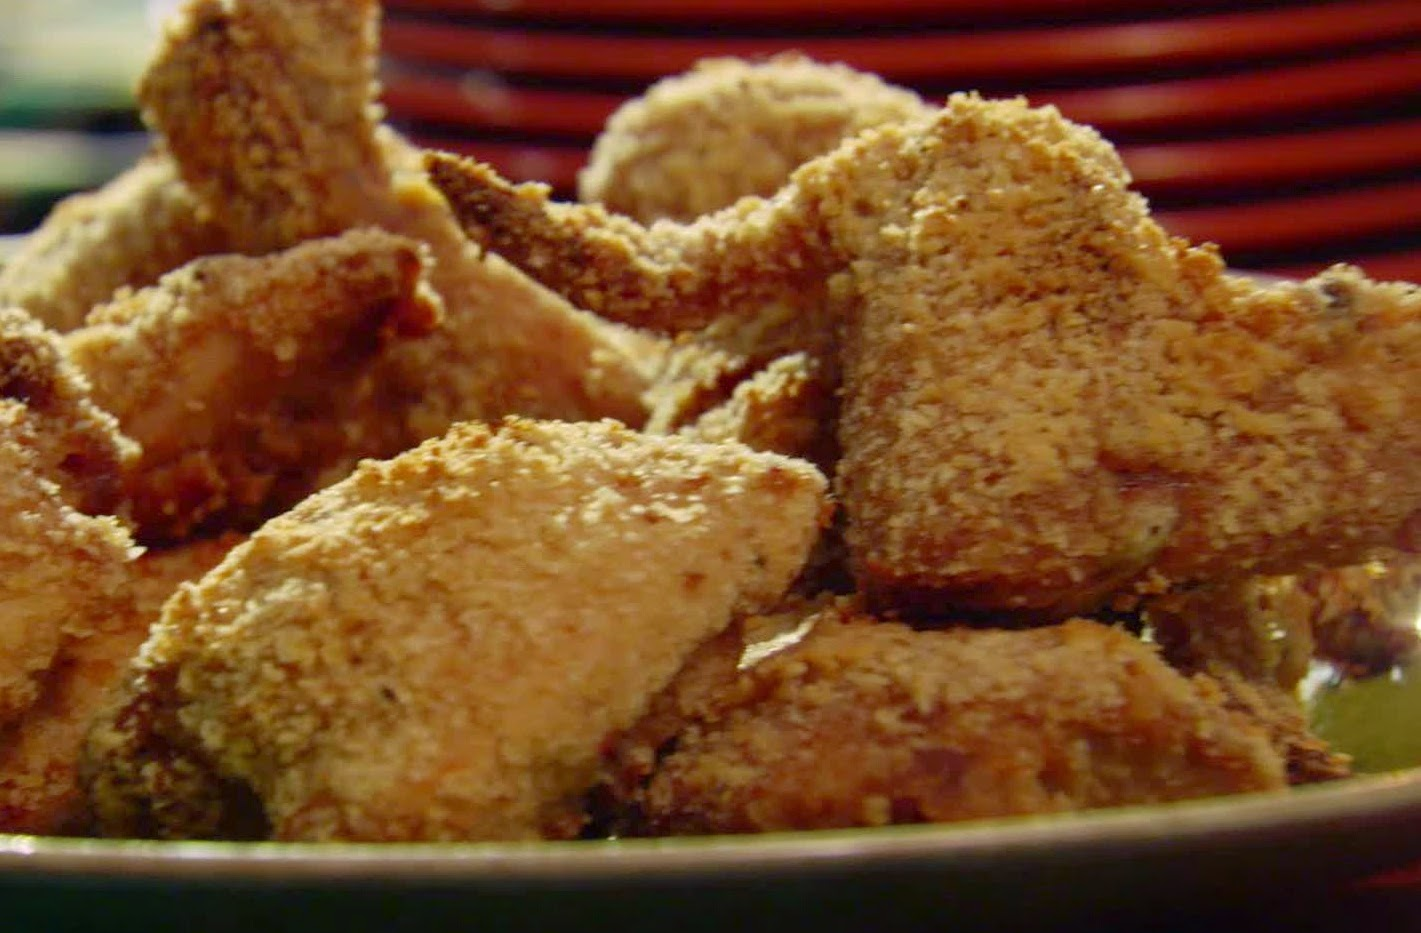 How to make panko and italian bread crumb baked chicken for Fried fish with bread crumbs